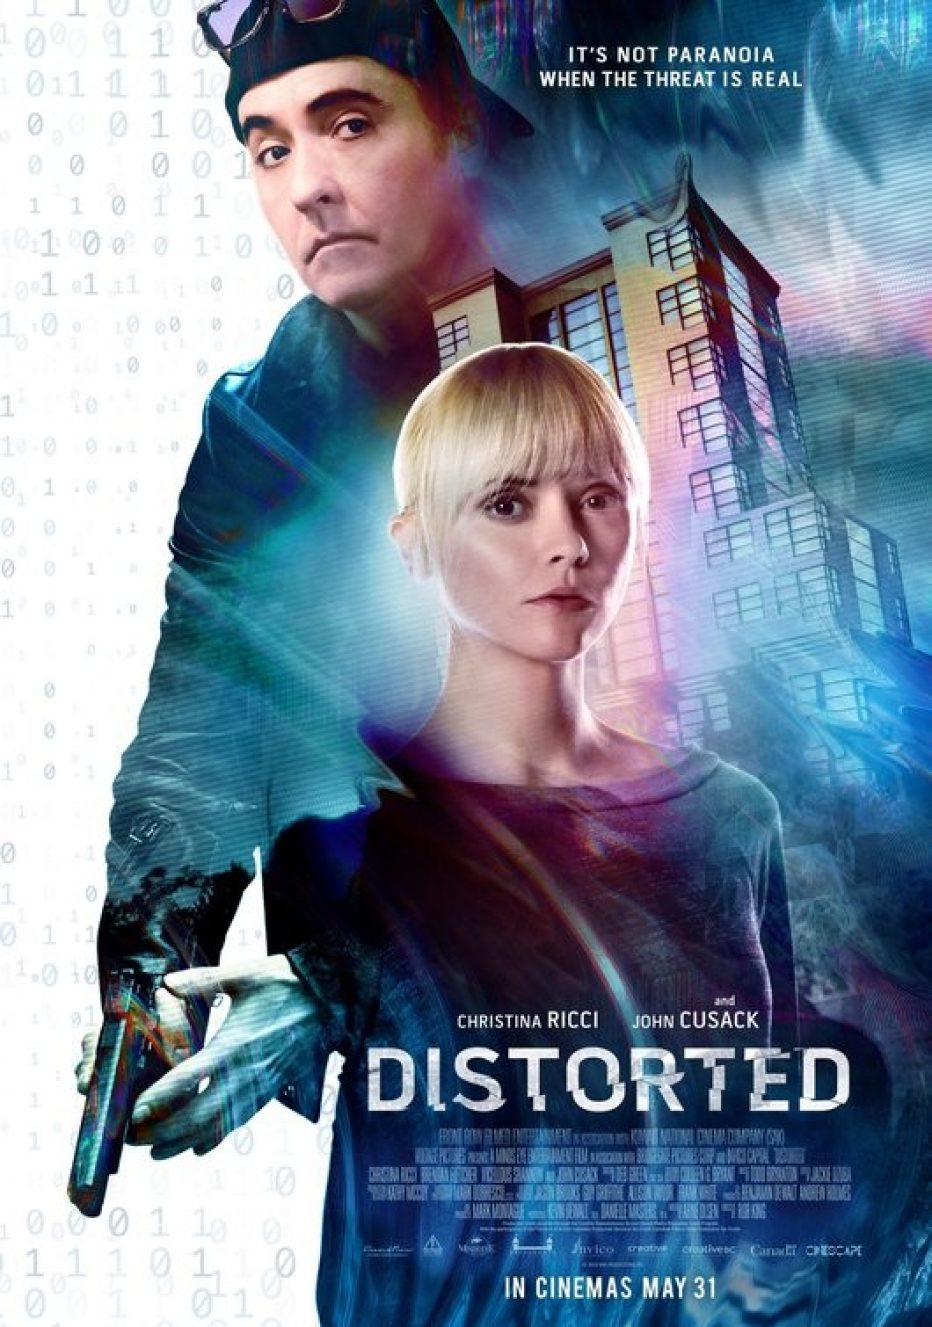 Distorted on Digital Download from 4th February Starring Christina Ricci and John Cusack